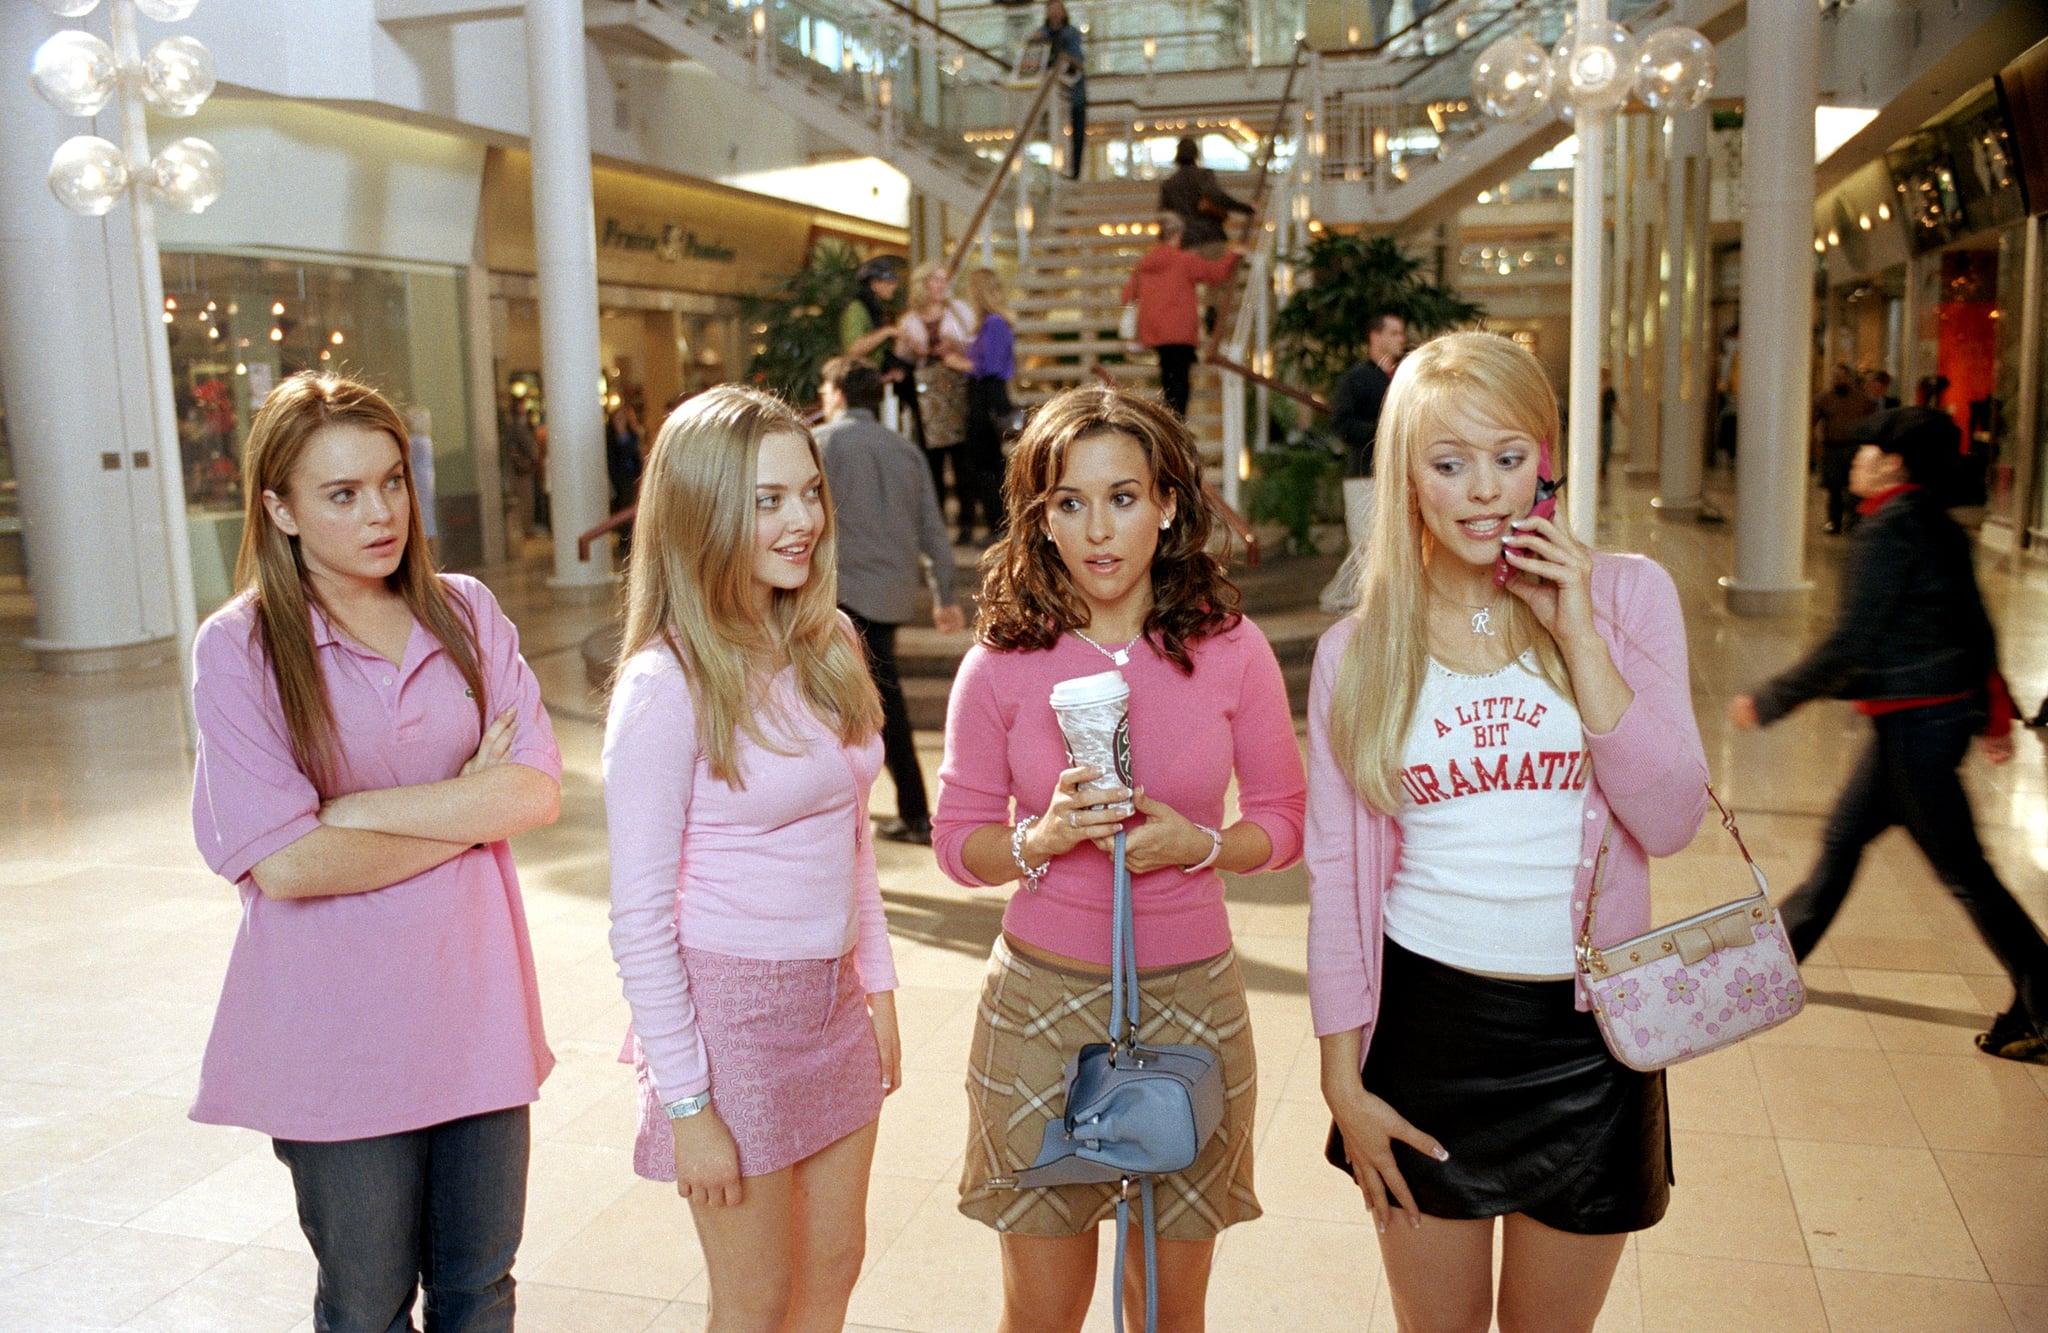 MEAN GIRLS, Lindsay Lohan, Amanda Seyfried, Lacey Chabert, Rachel McAdams, 2004, (c) Paramount/courtesy Everett Collection